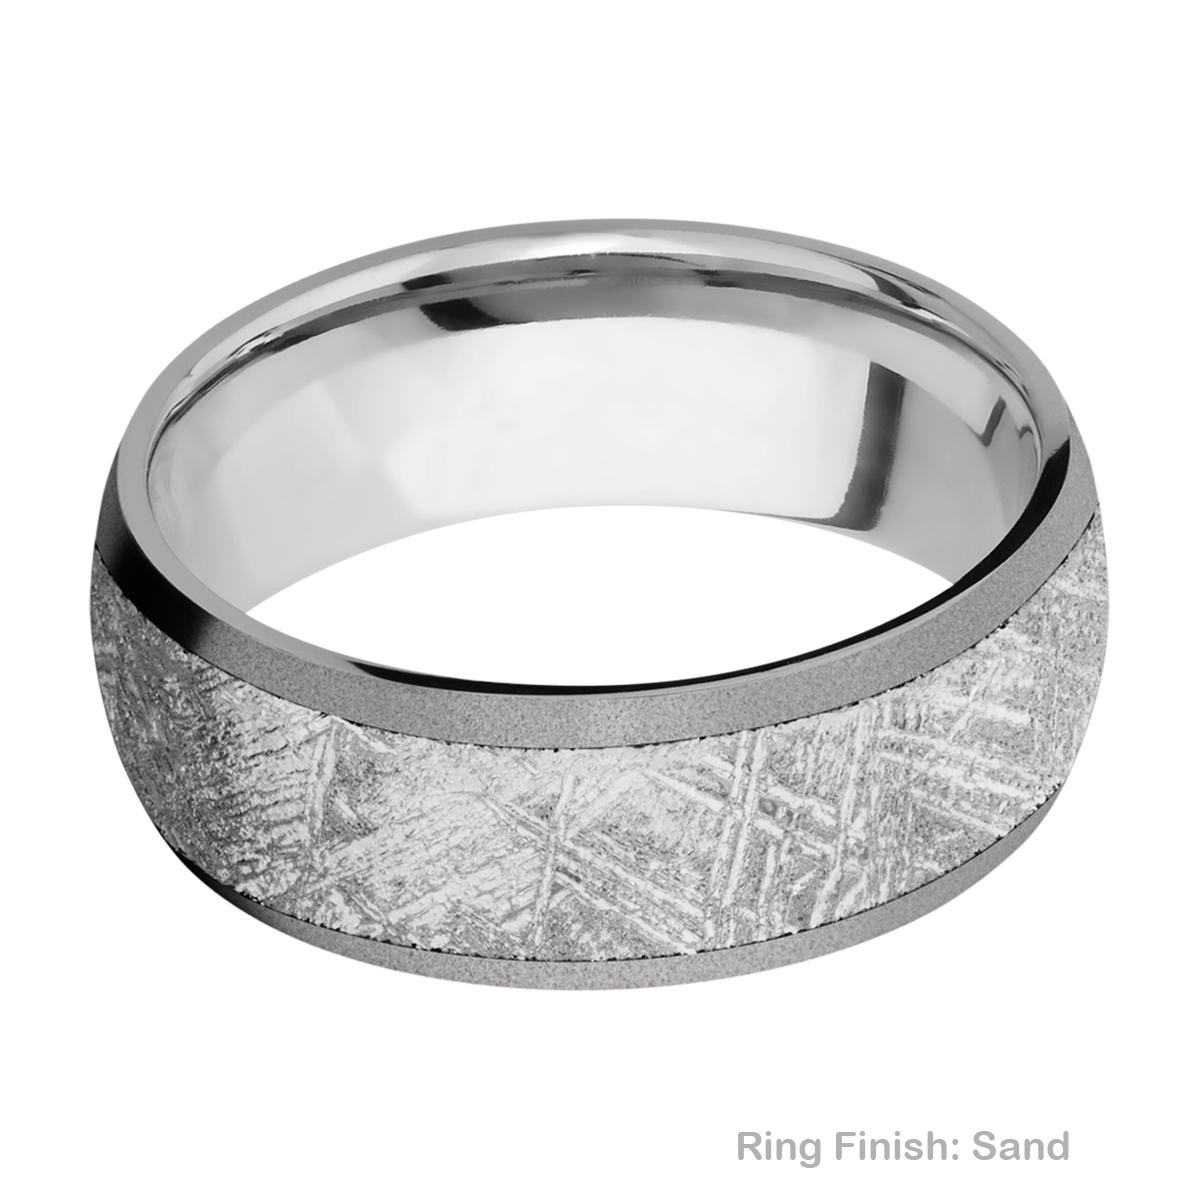 Lashbrook 8D16/METEORITE Titanium Wedding Ring or Band Alternative View 4